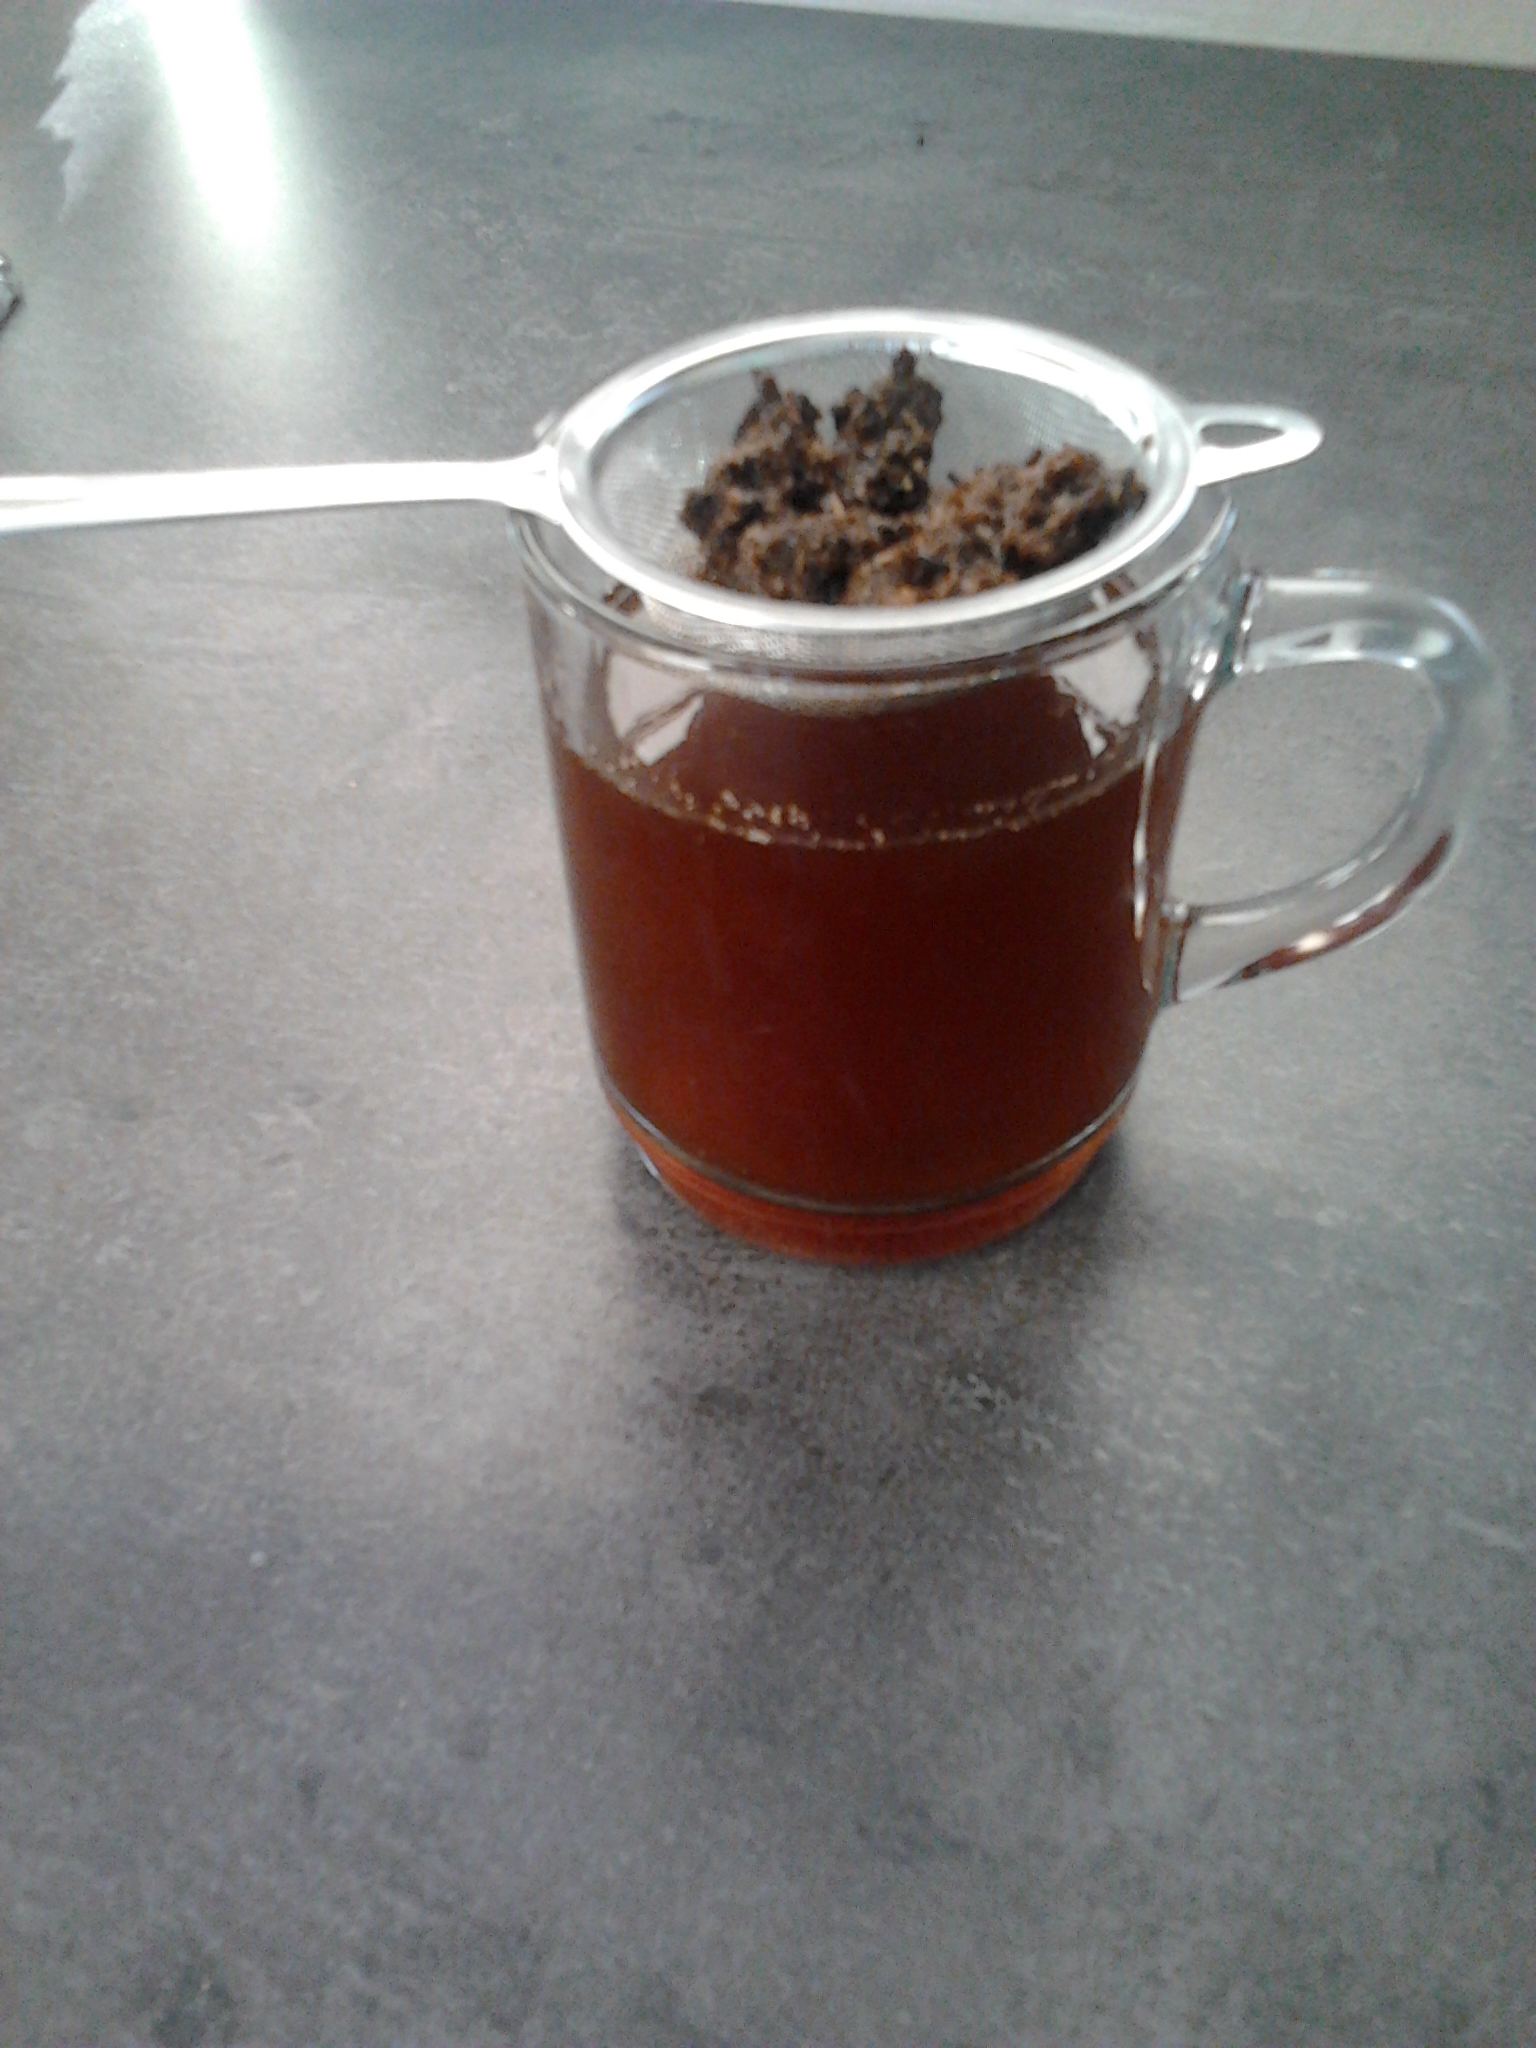 Picture of Homemade Dandelion Coffee.